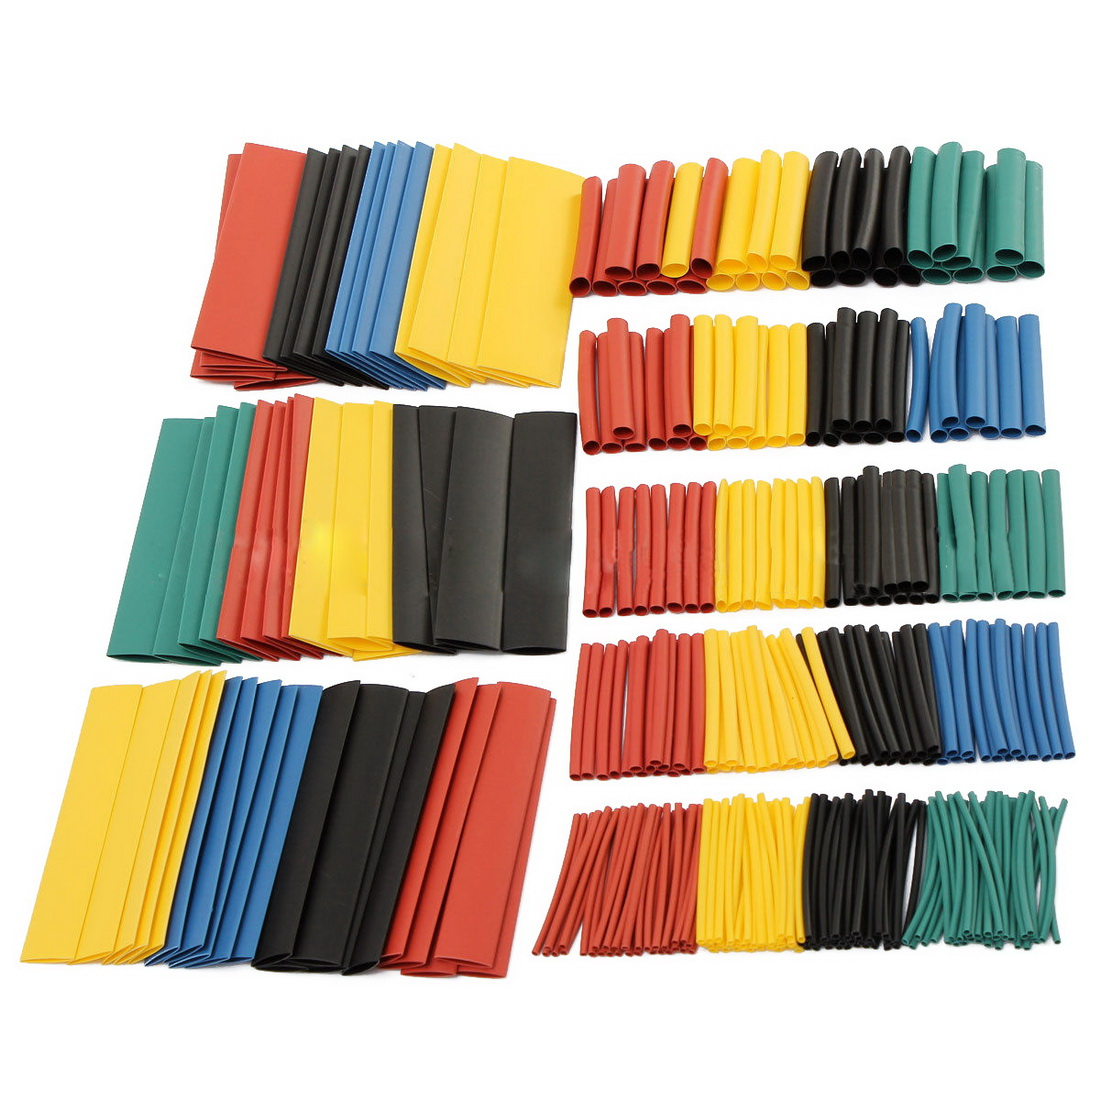 127/328/560/580PCs/set Polyolefin Heat Shrink Tube Heat Tubo Shrinkable Wire Cable Insulated Sleeving Tubing Electronic Parts